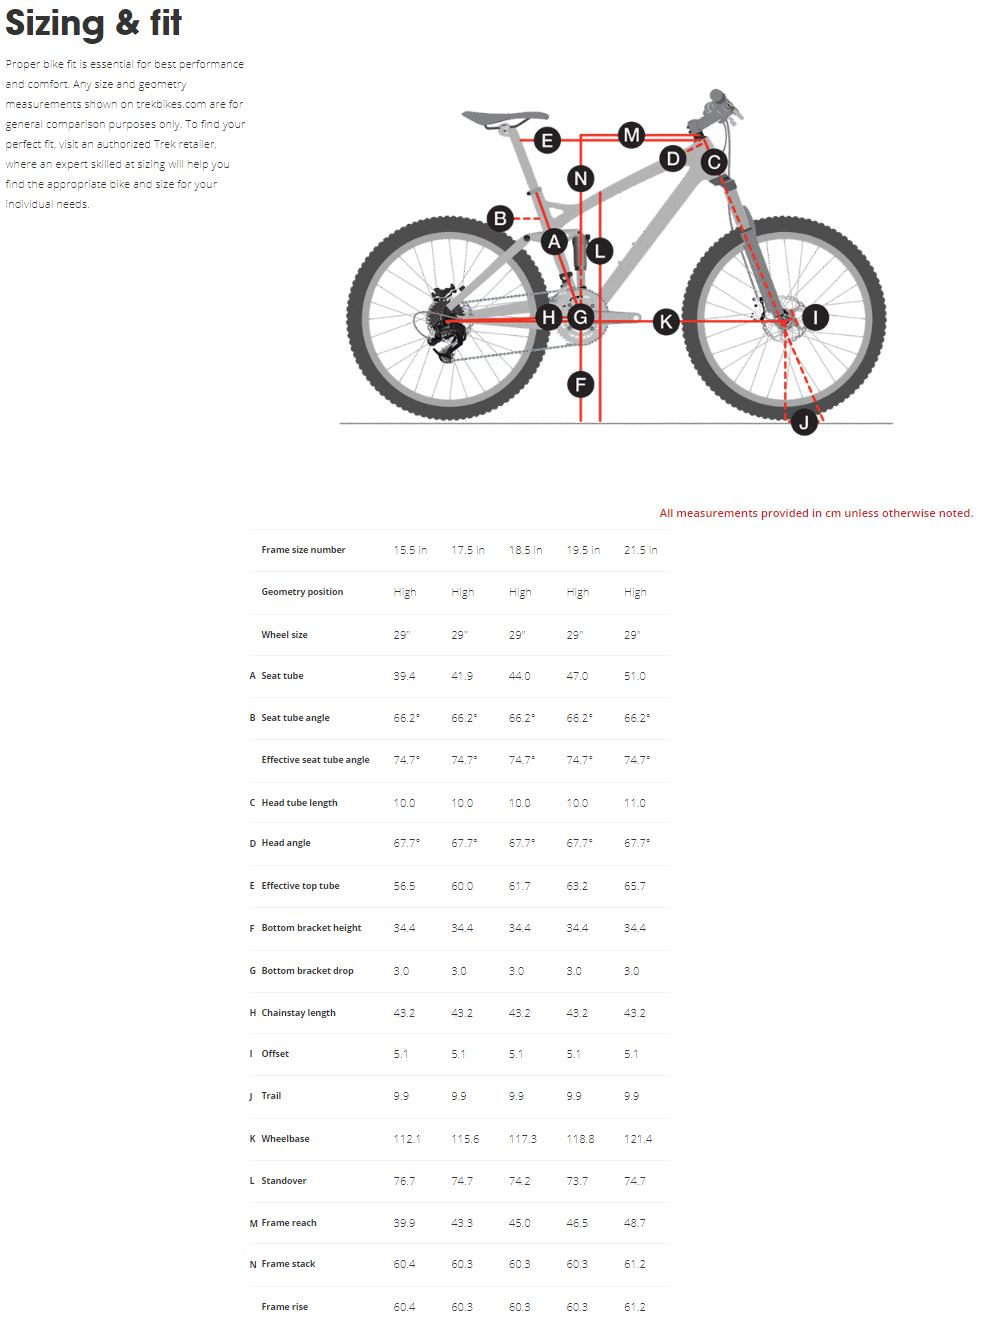 Trek Fuel EX 9.9 geometry chart